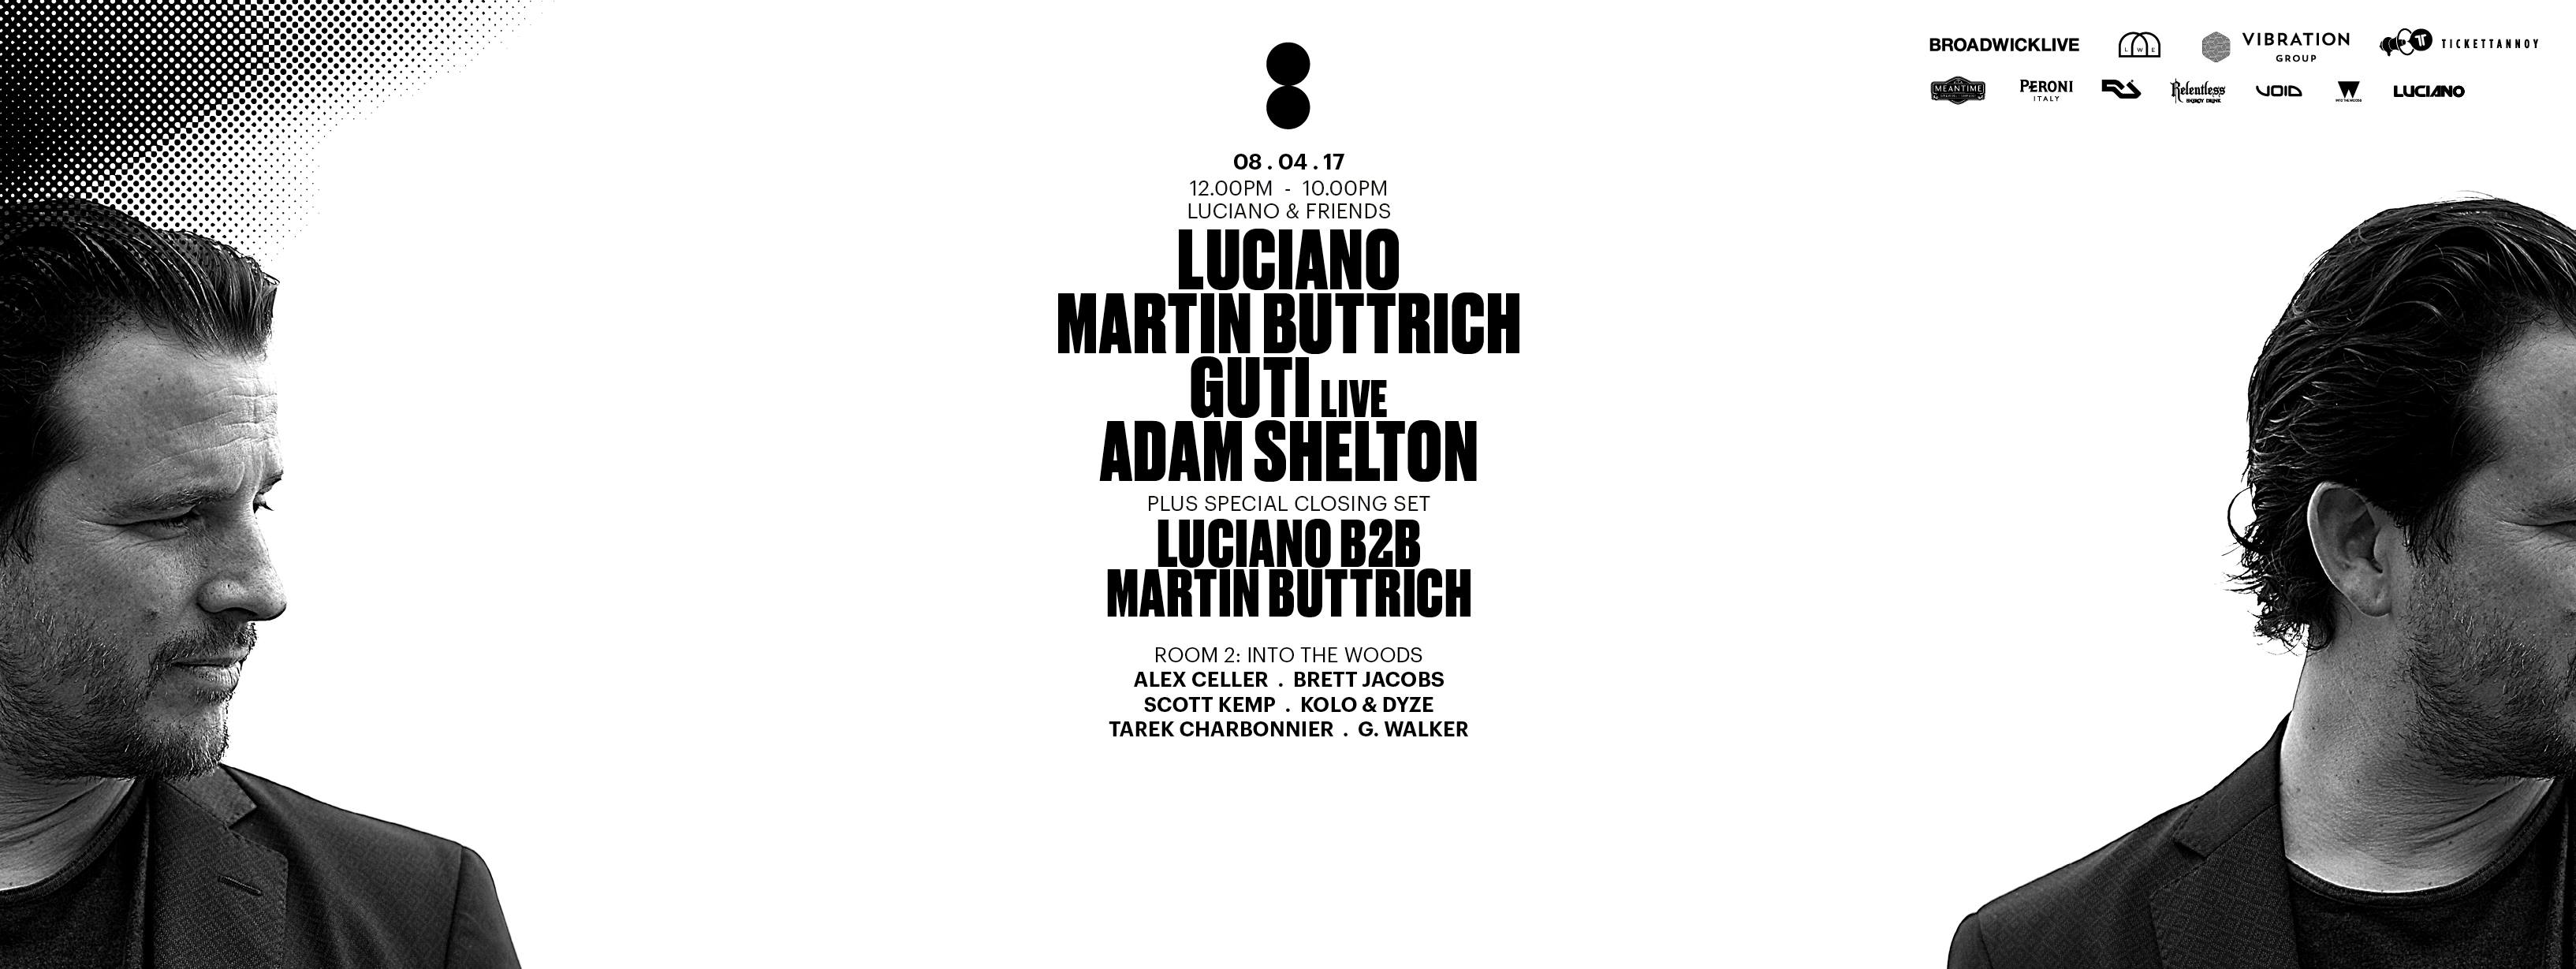 download → William Djoko - live at Luciano & Friends (Printworks, London) - 08-Apr-2017